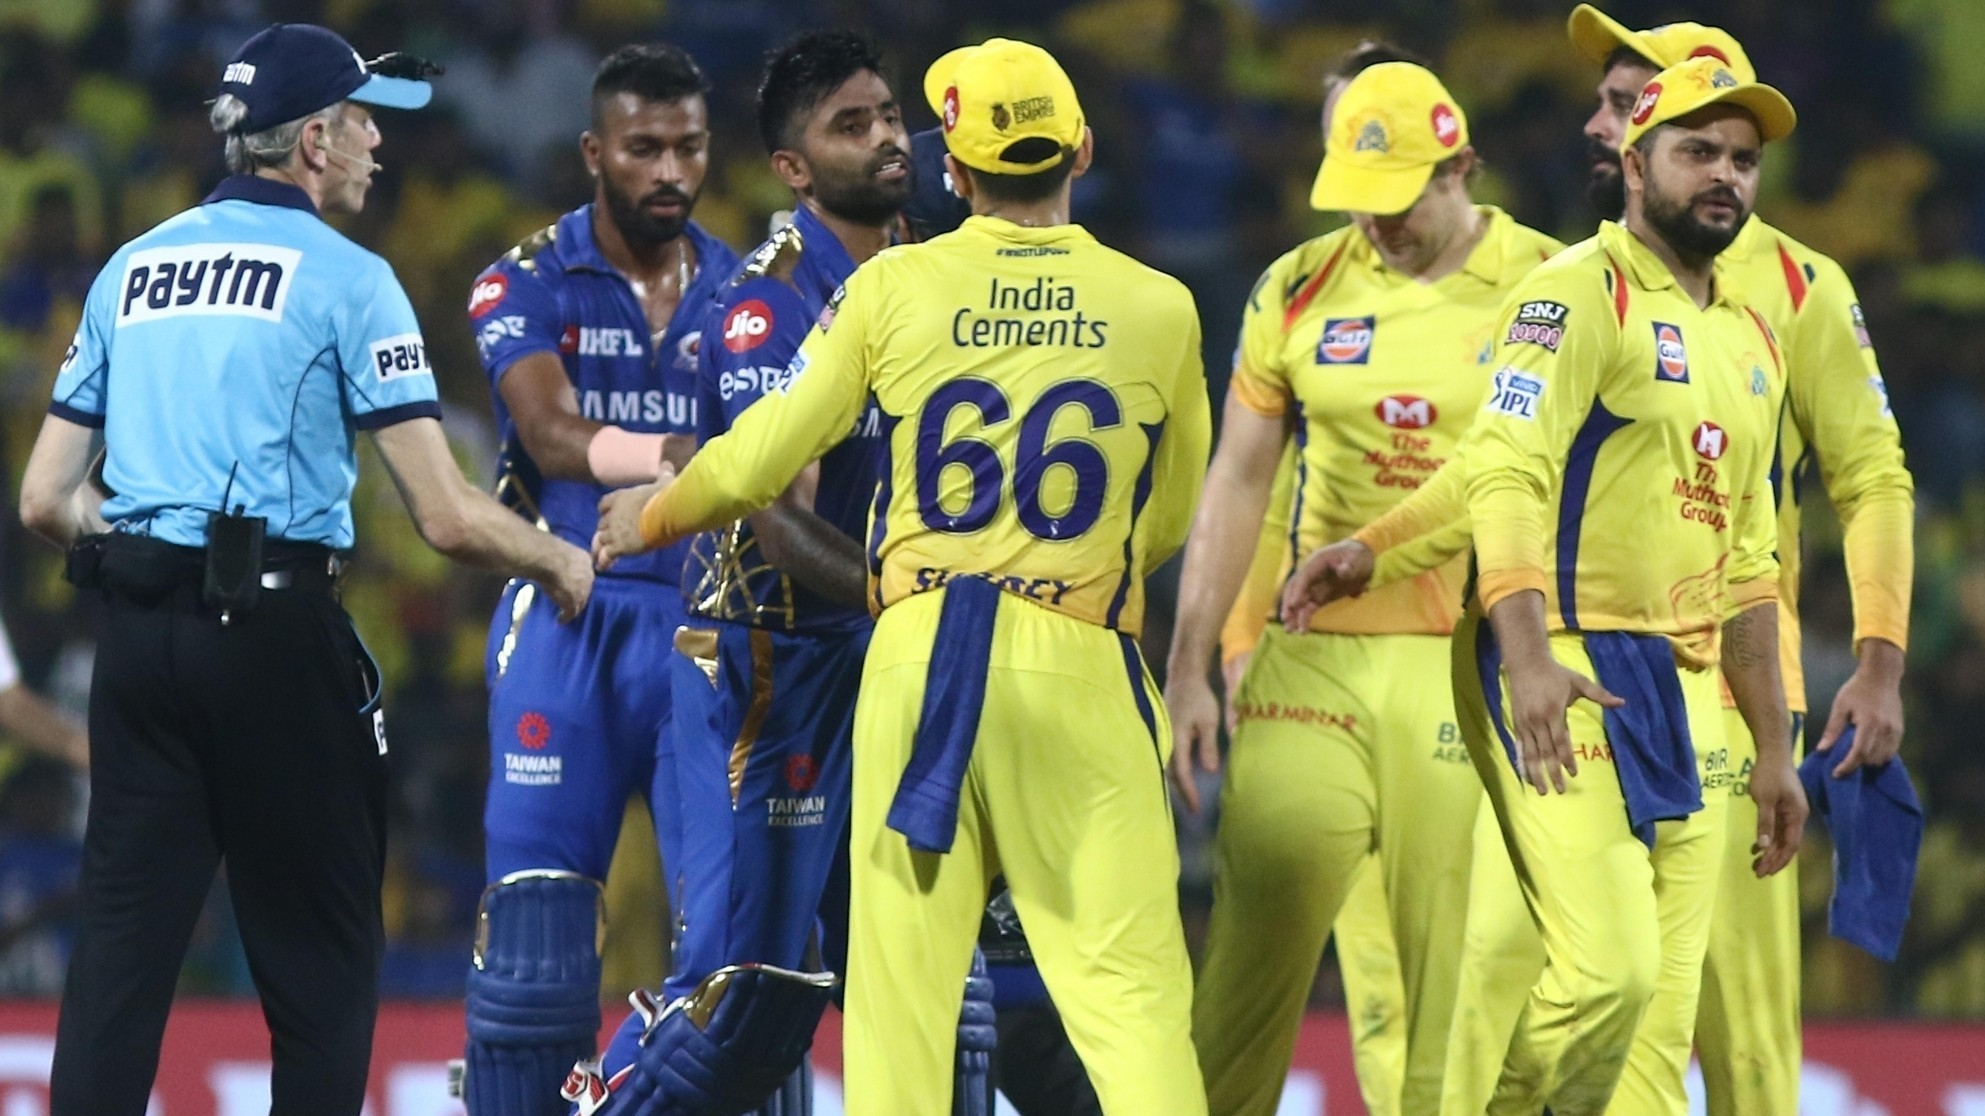 IPL 2020: BCCI's SOP recommends use of vacant stands as extended dressing rooms